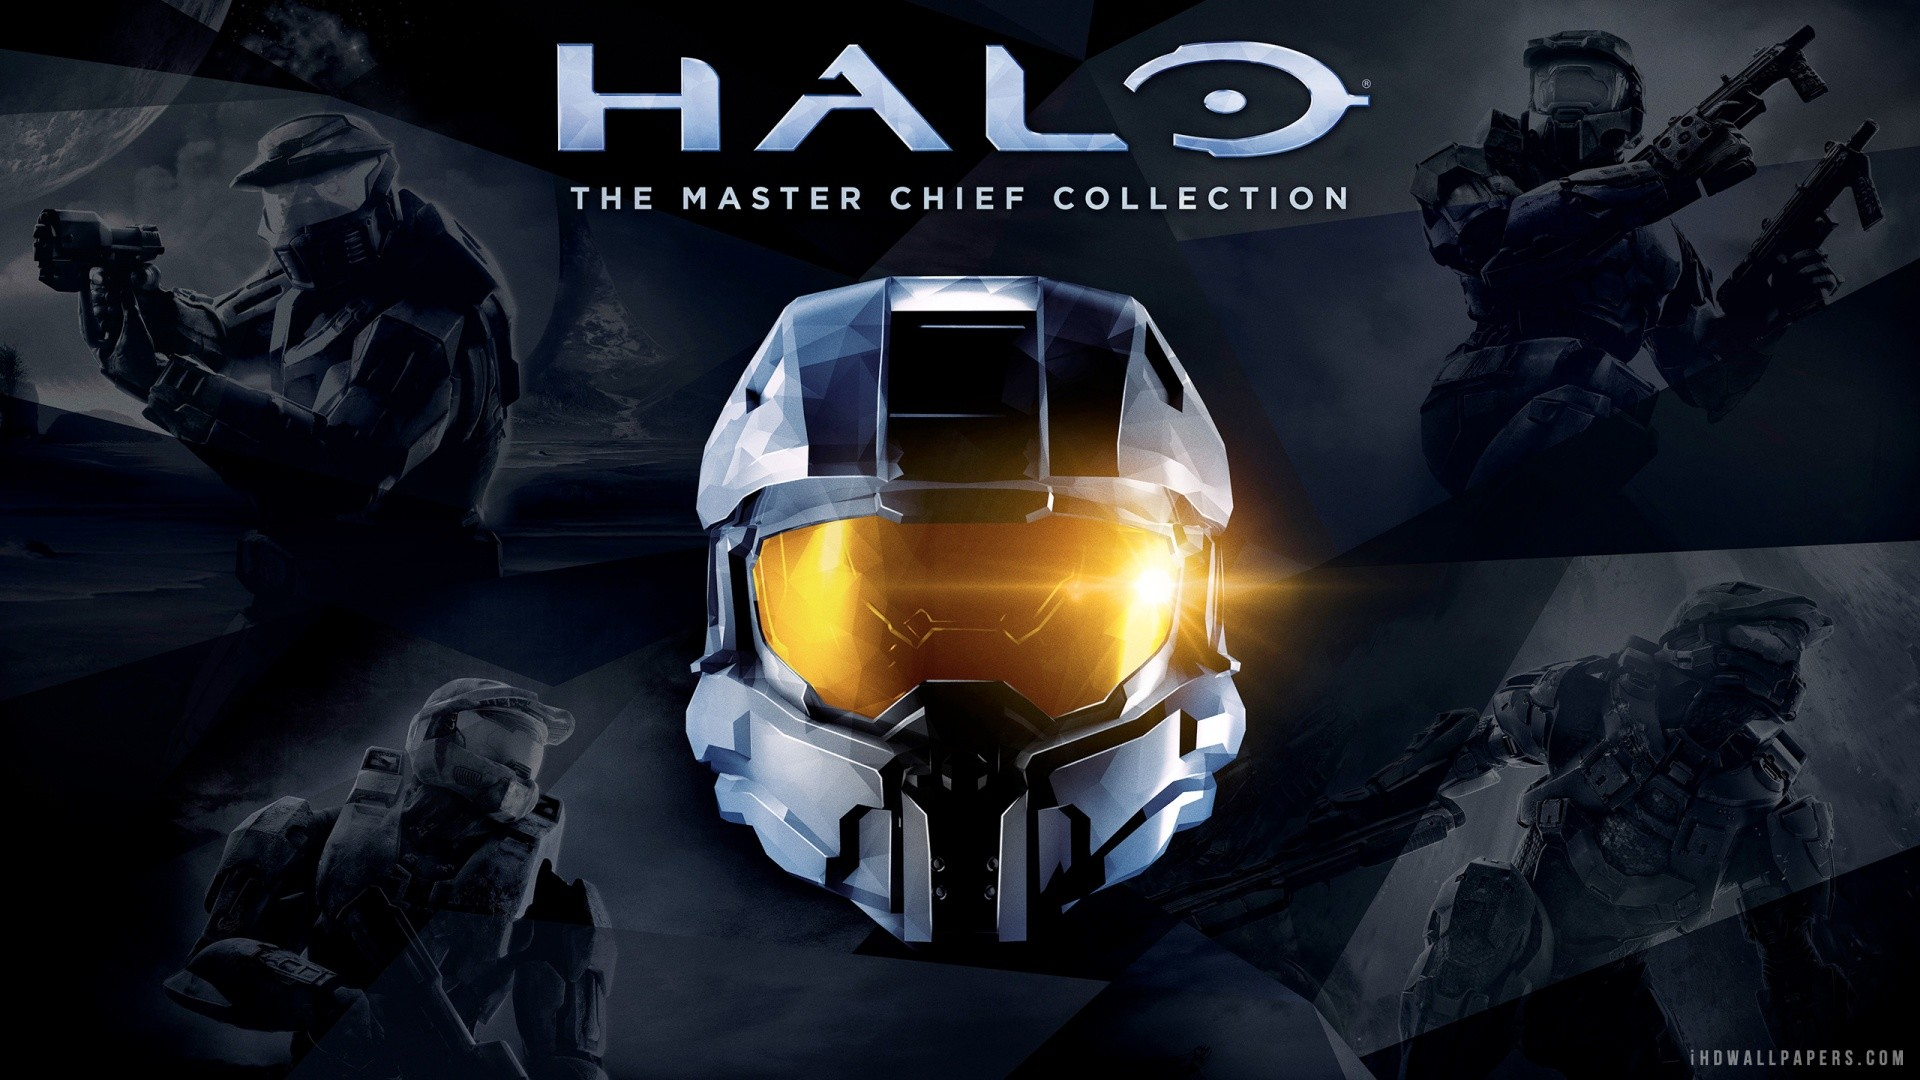 1920x1080 Halo The Master Chief Collection HD Wallpaper - iHD Wallpapers